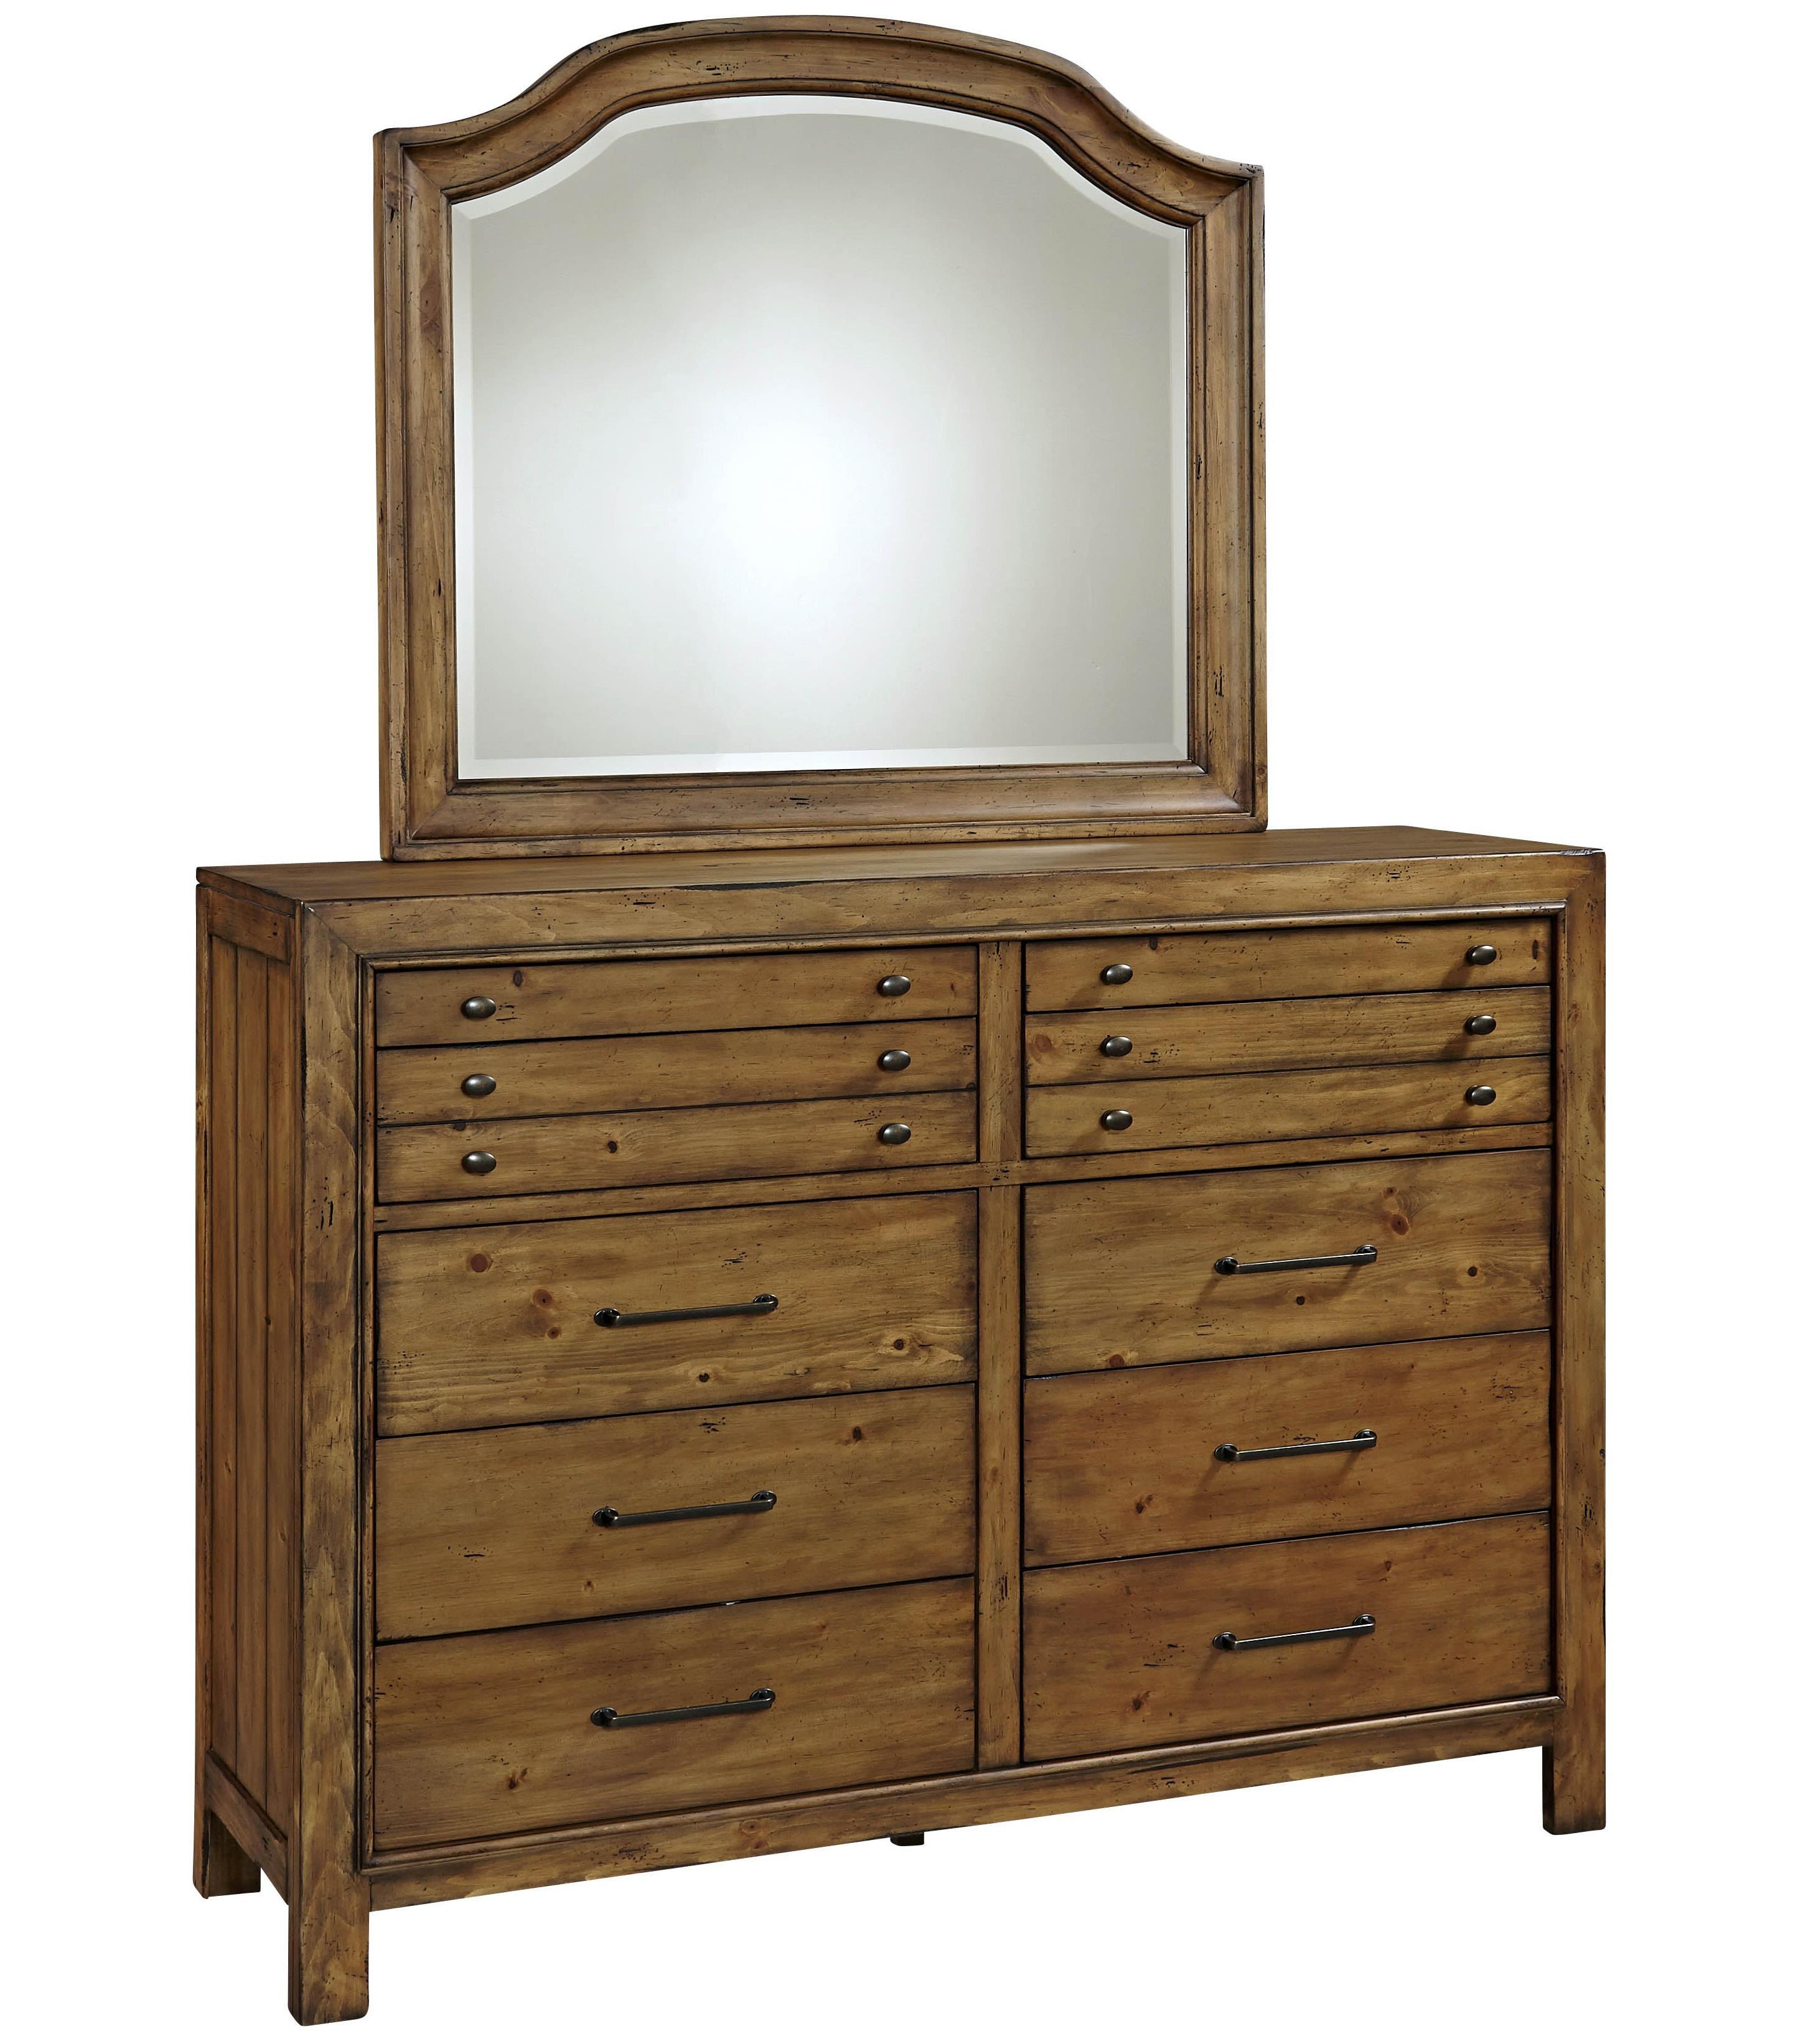 Broyhill Furniture Bethany Square Chesser and Mirror Set - Item Number: 4930-234+7